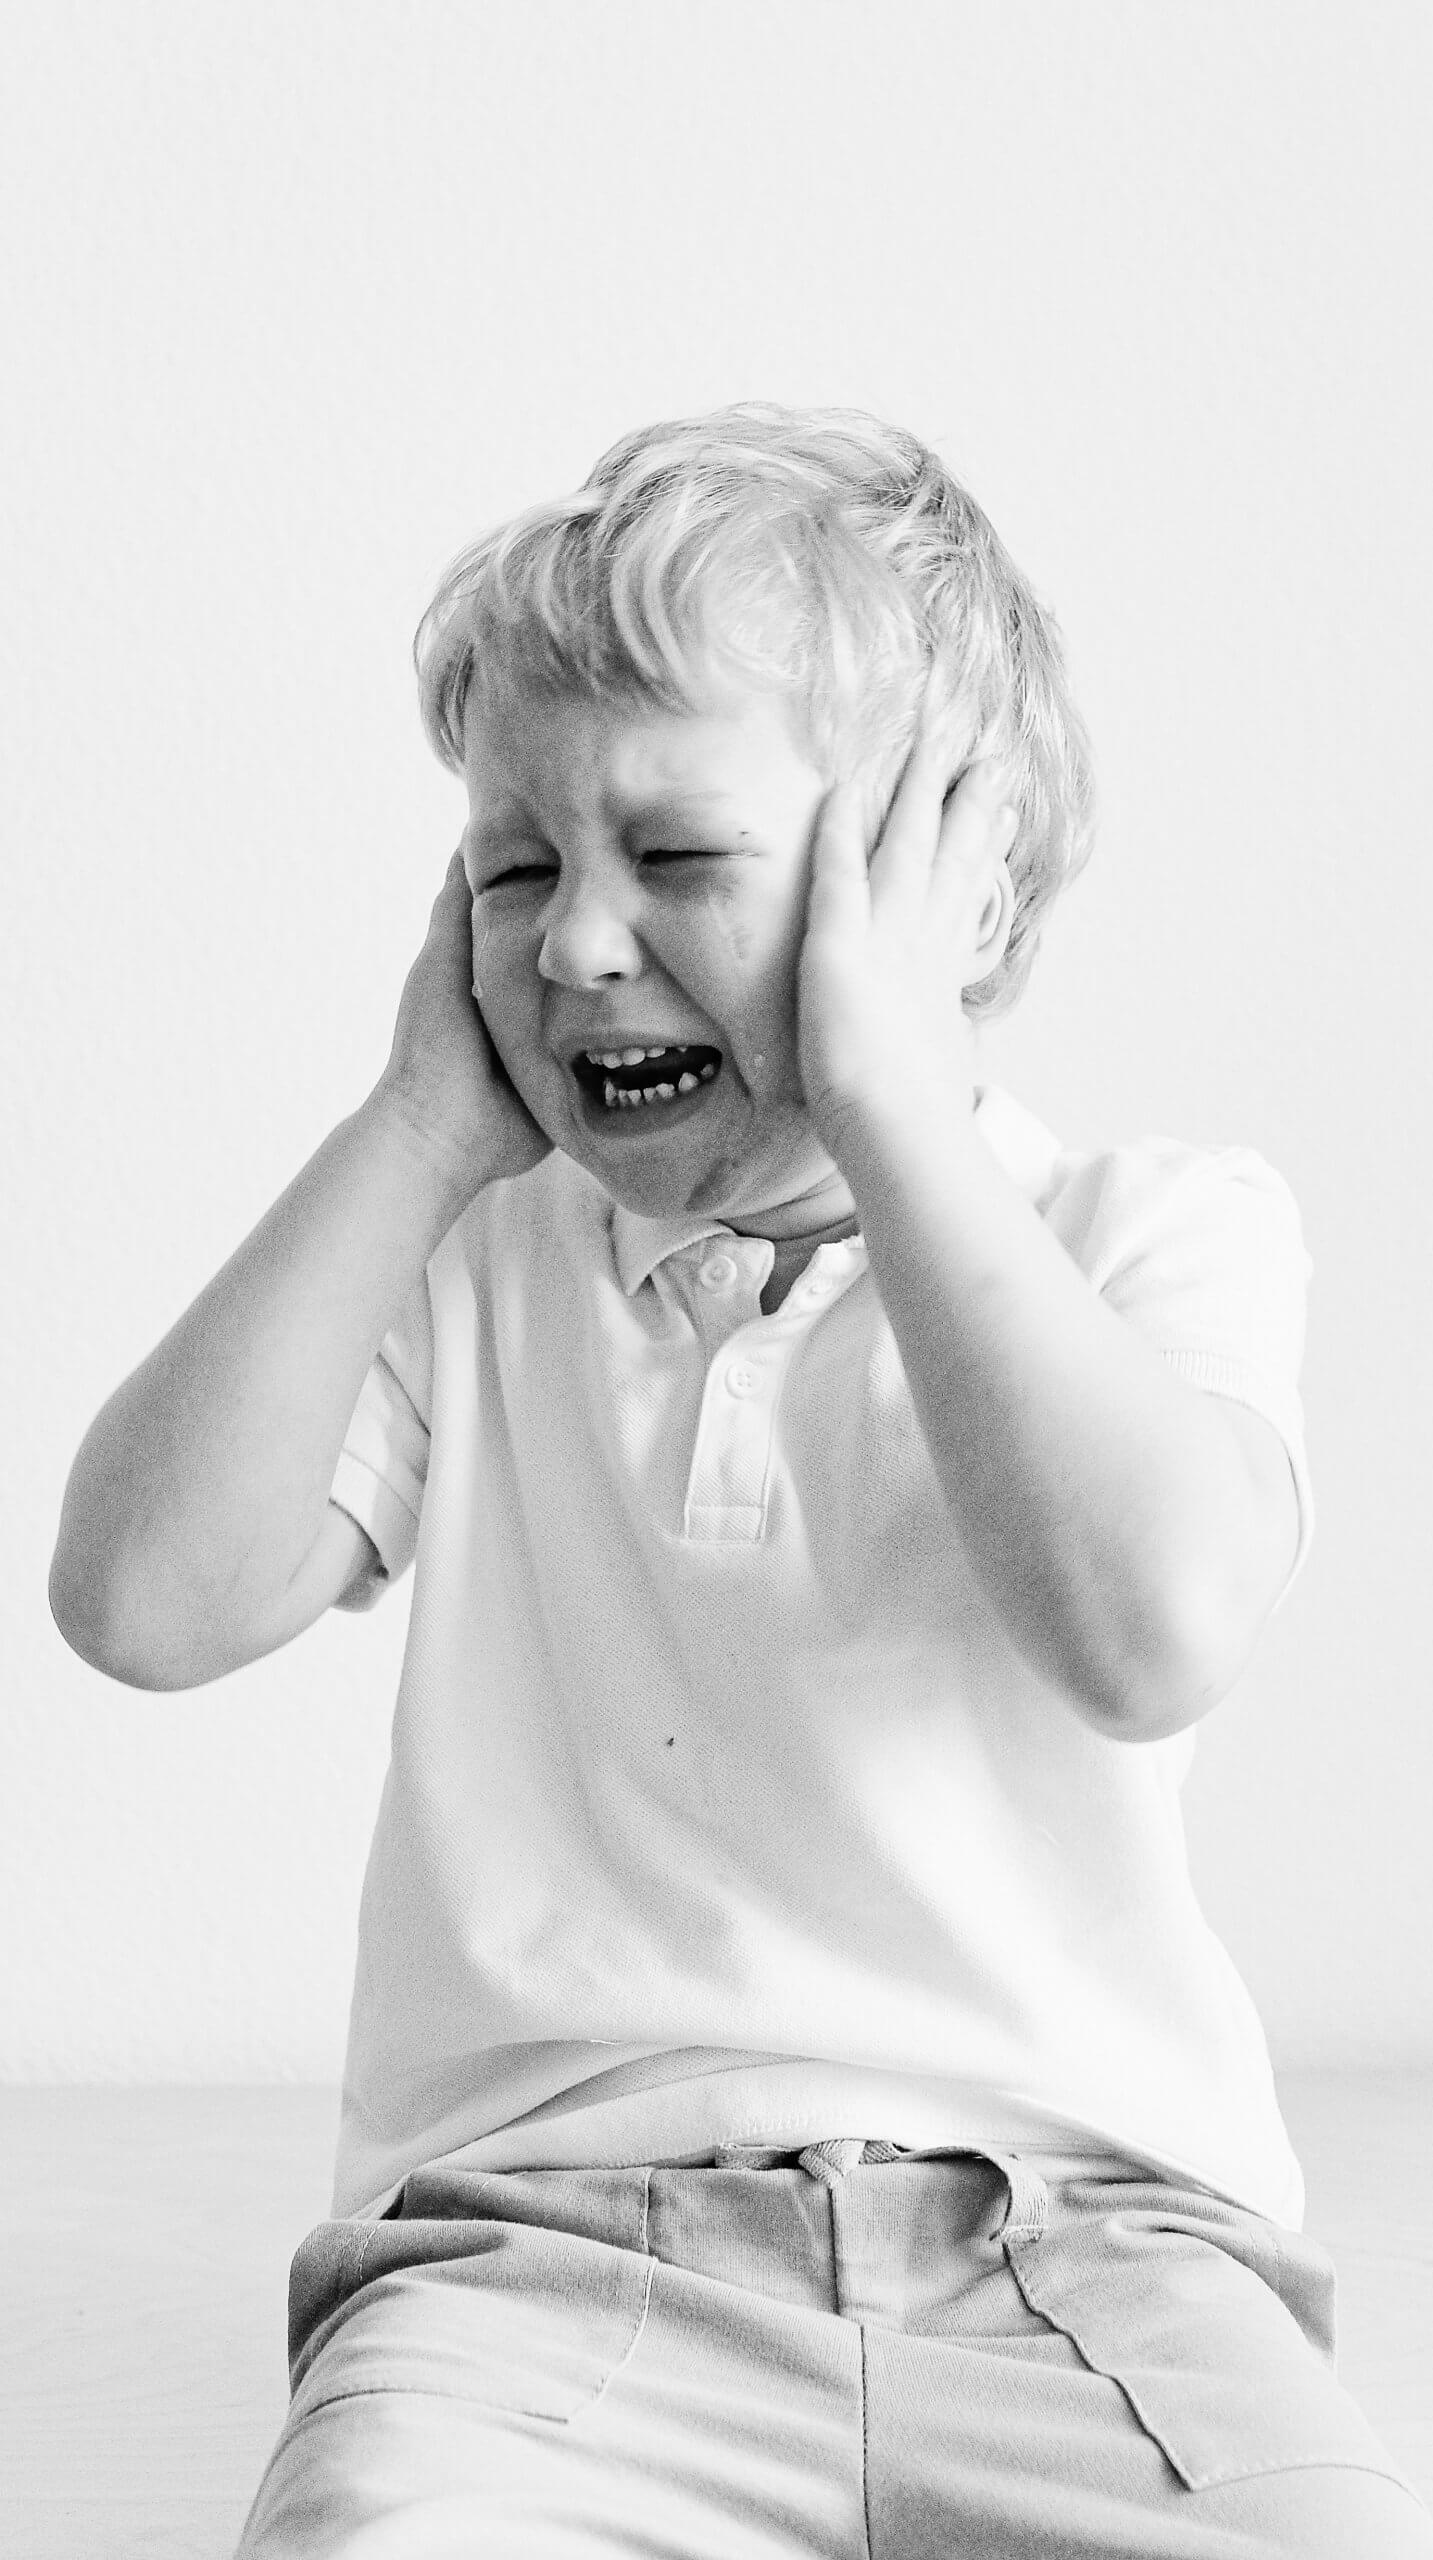 Disorganized Attachment - photo of young boy crying (self-regulation)